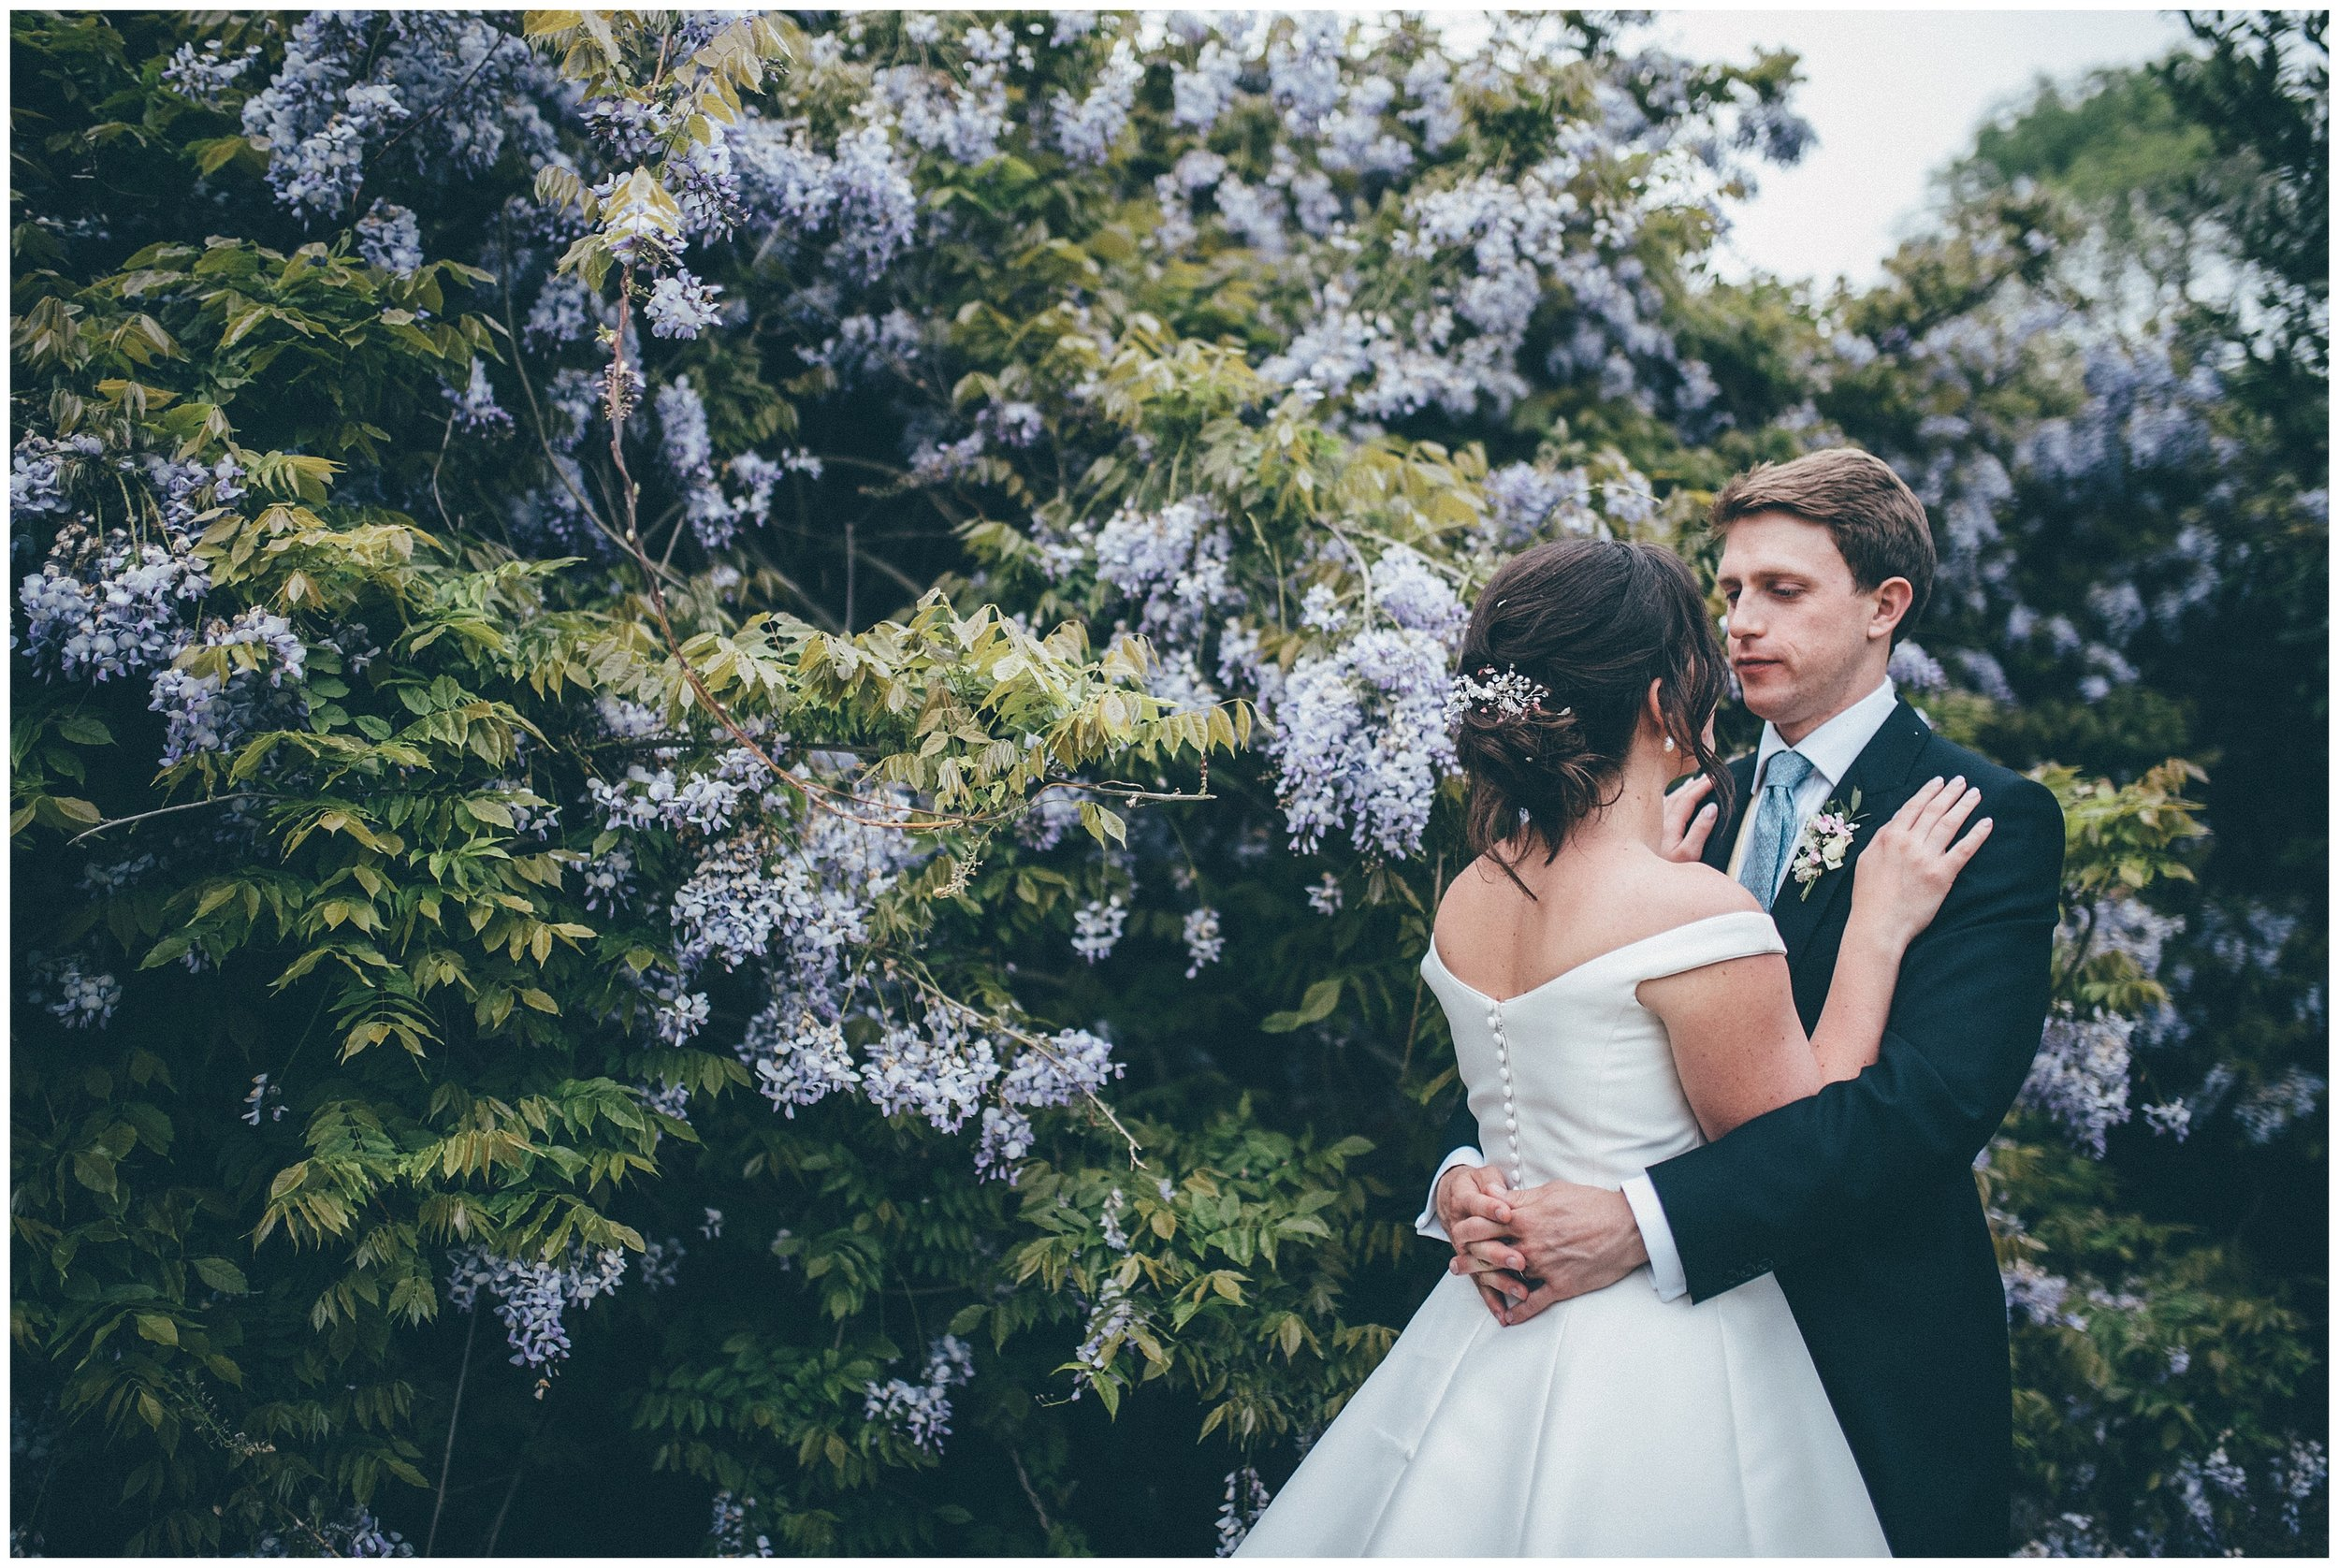 Bride and groom in front of beautiful flowers on their wedding day at Henham Park.